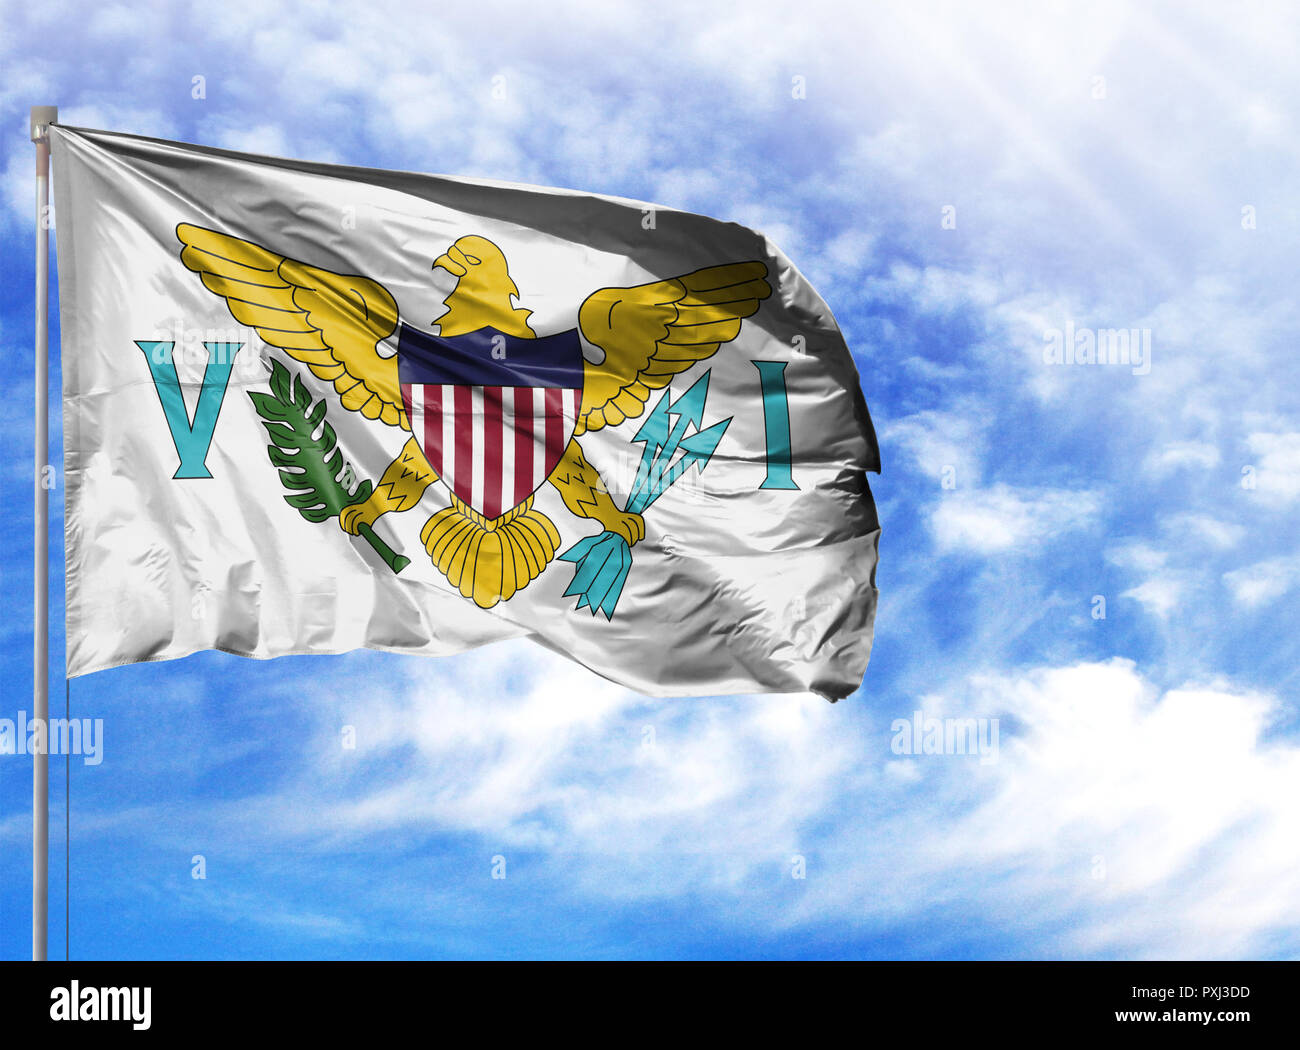 National flag of Virgin Islands of the United States on a flagpole in front of blue sky. - Stock Image